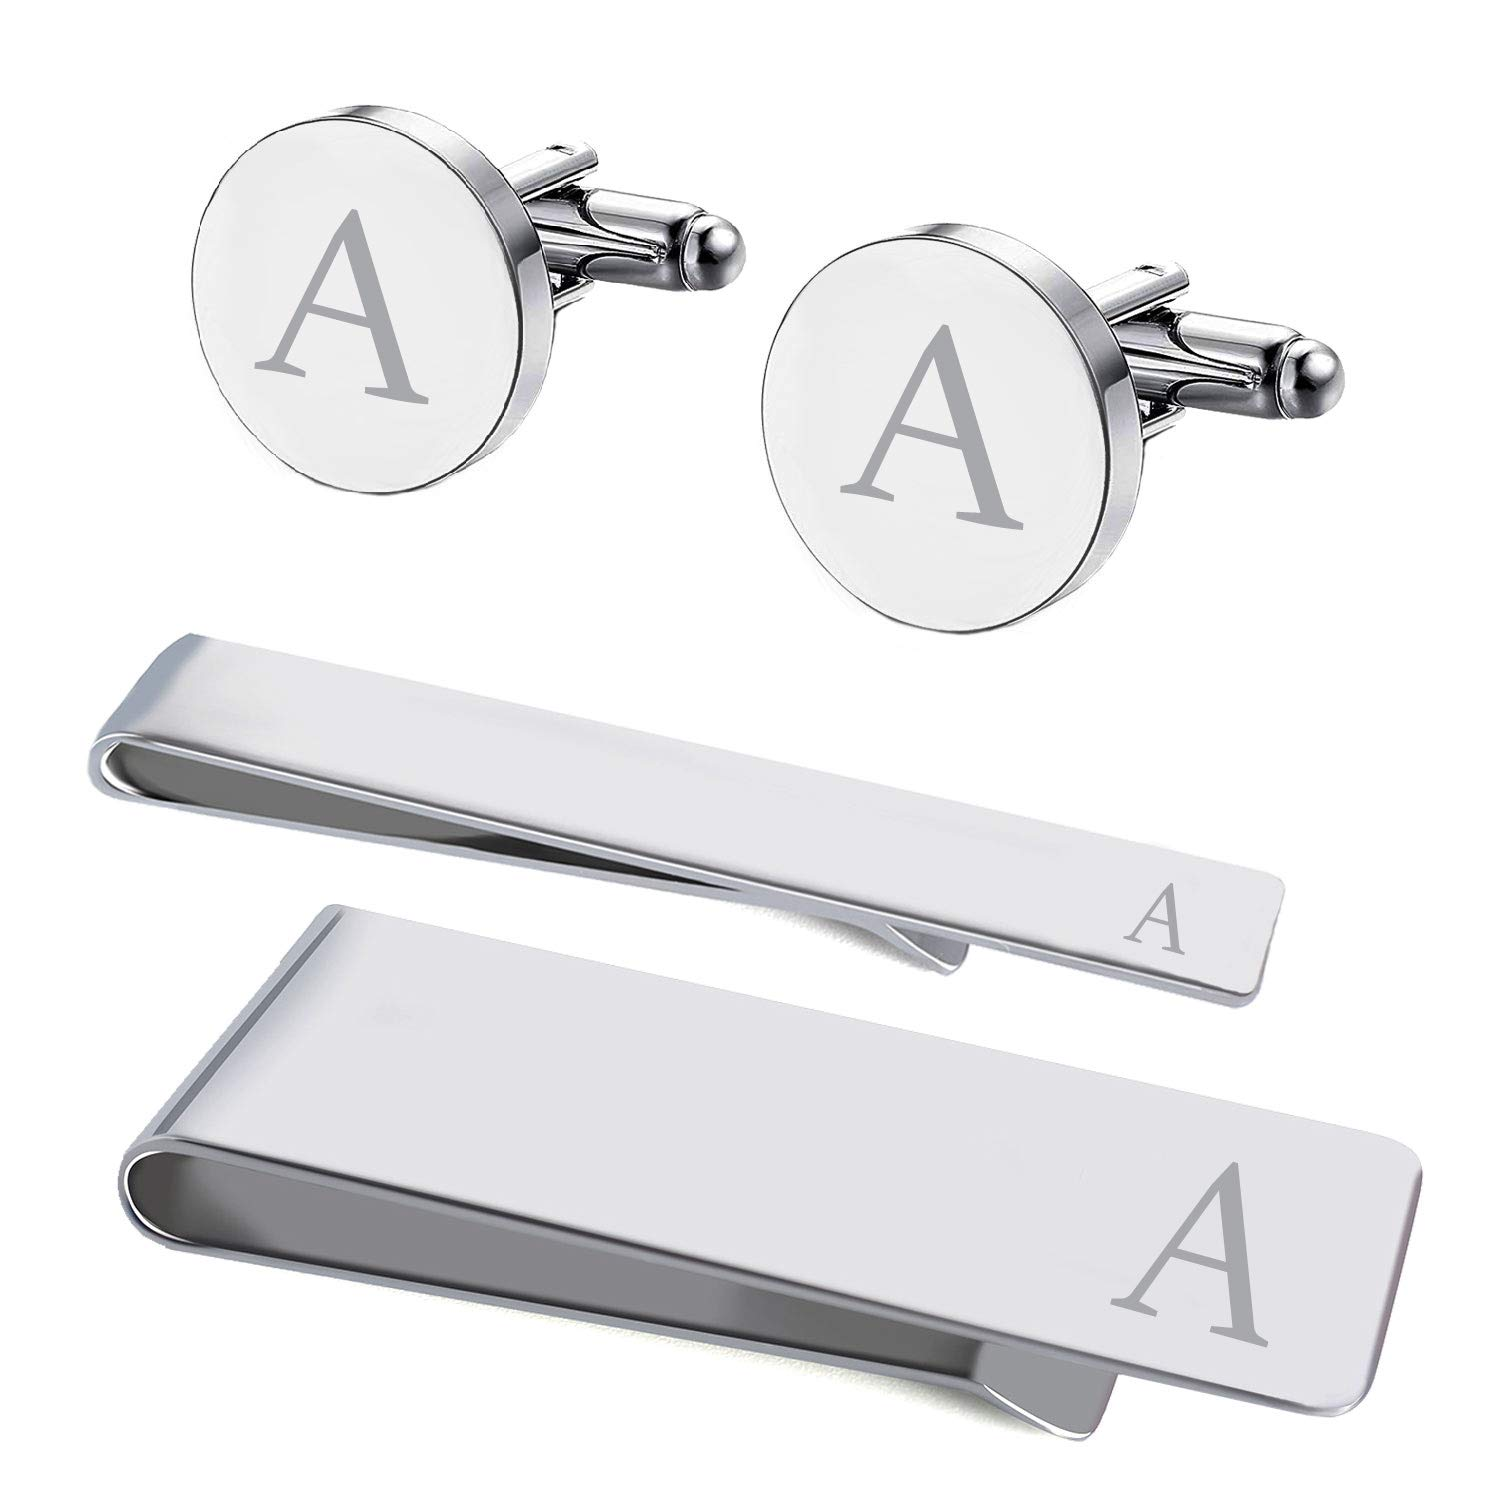 BodyJ4You 4PC Cufflinks Tie Bar Money Clip Button Shirt Personalized Initials Letter A Gift Set